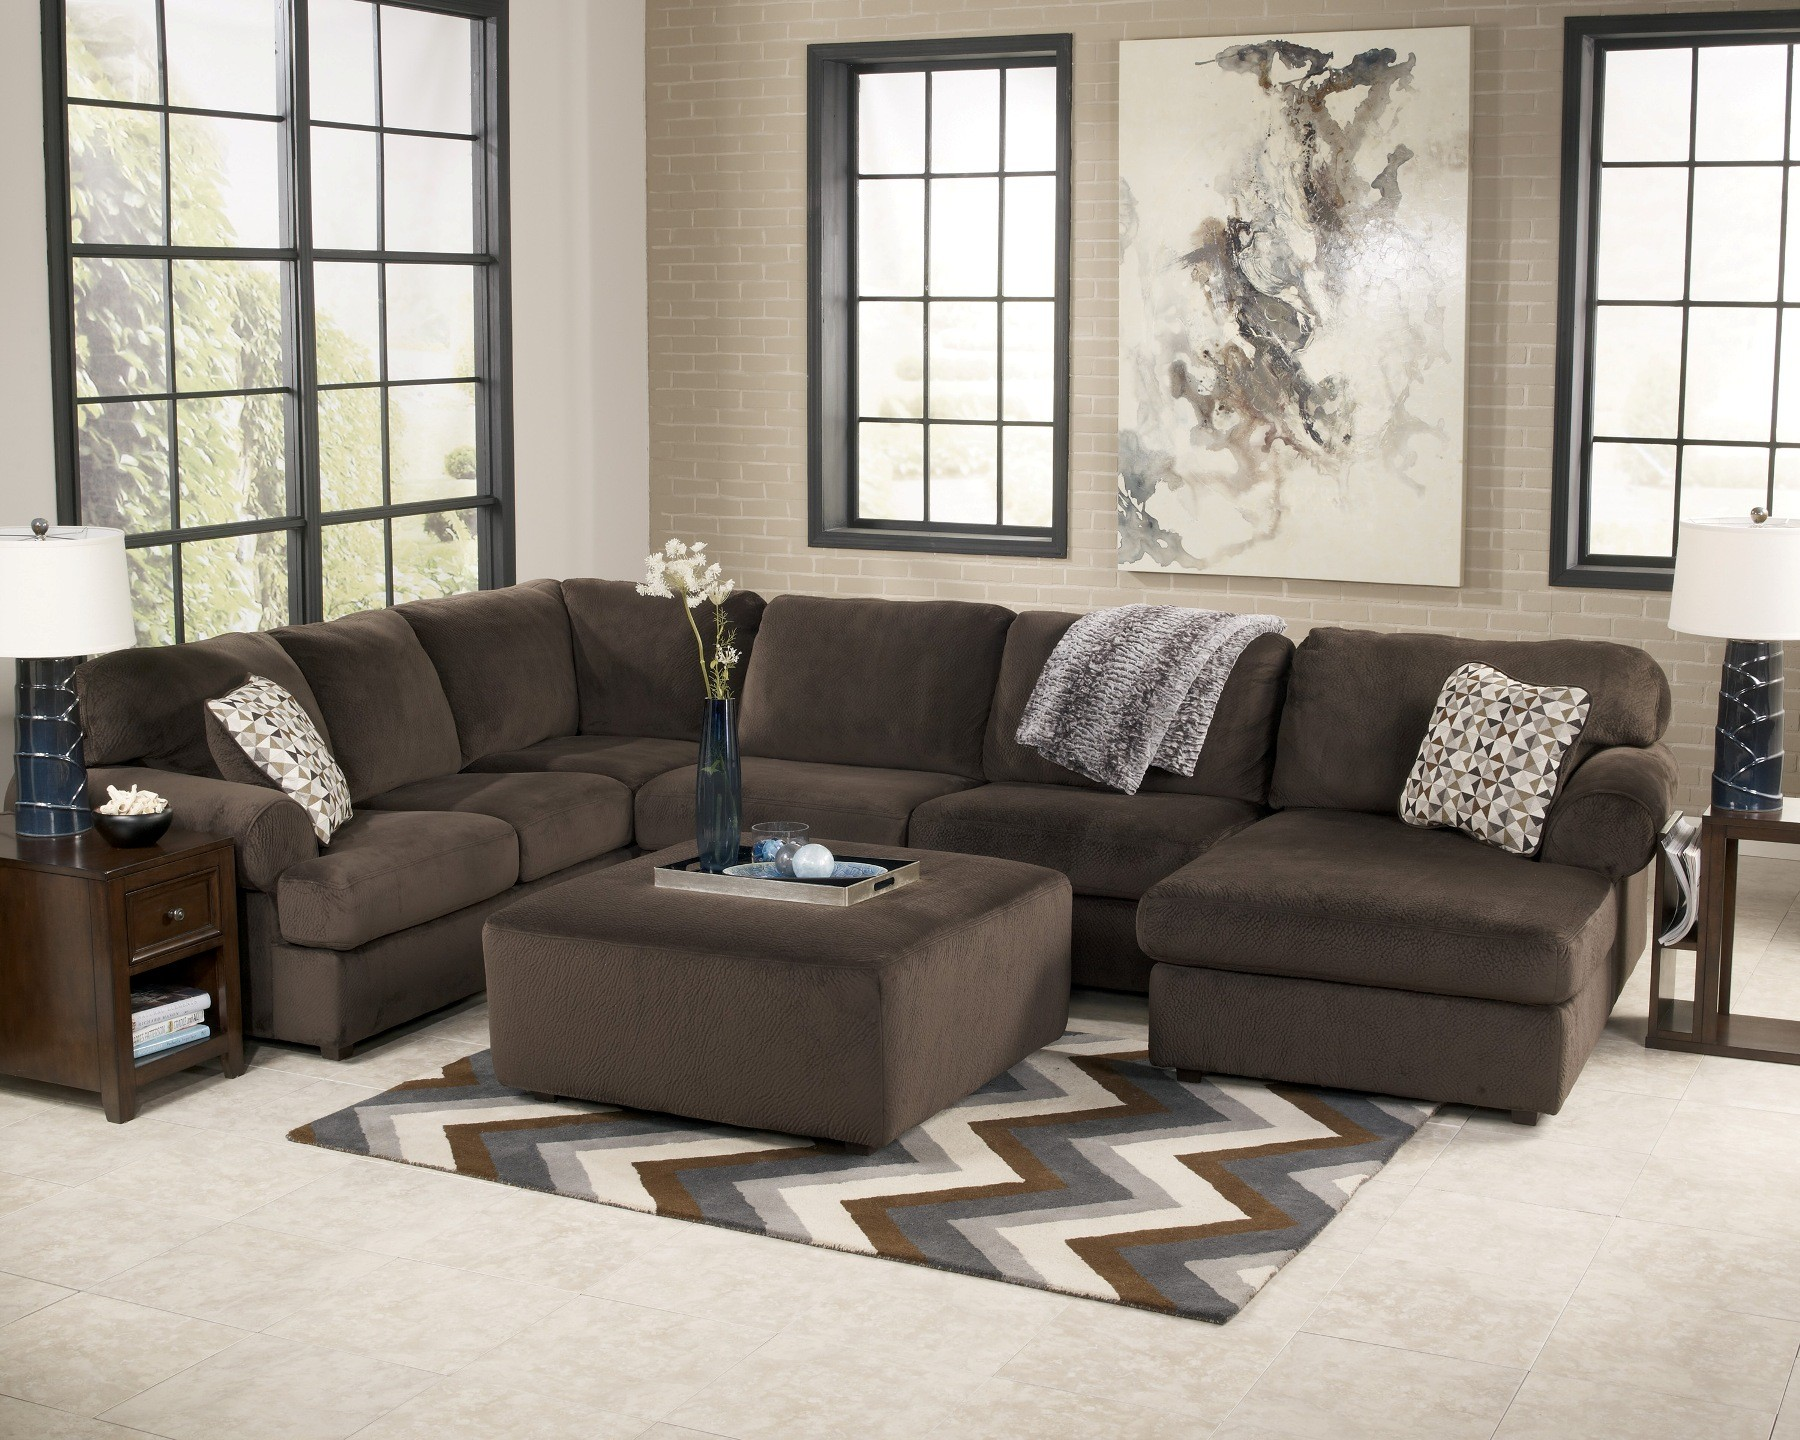 Microfiber leather 2 two tone small sectional sofa with chaise